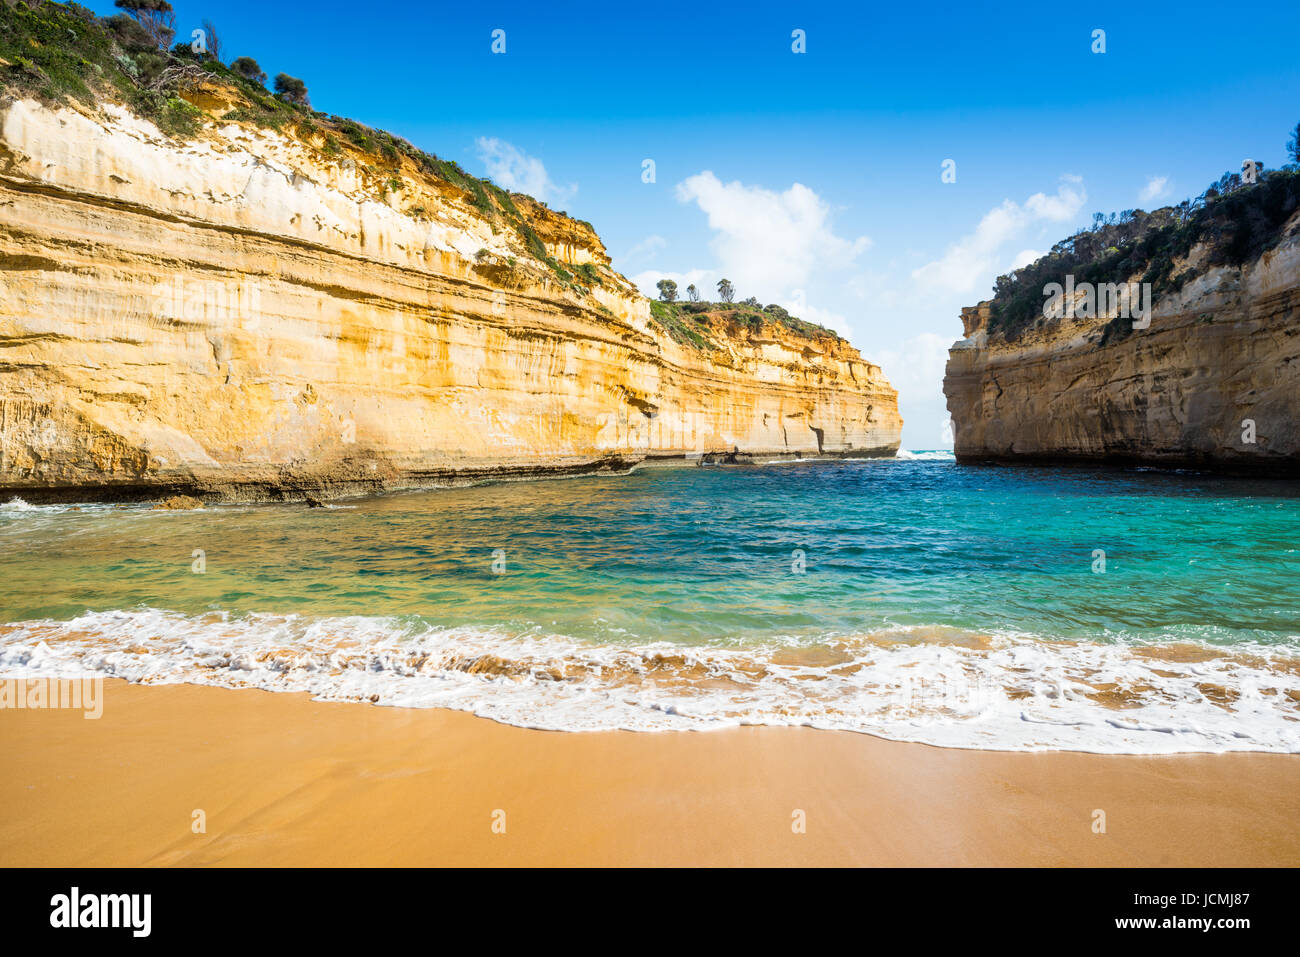 Loch Ard Gorge, Port Campbell on the Great Ocean Road, South Australia, near the Twelve Apostles - Stock Image